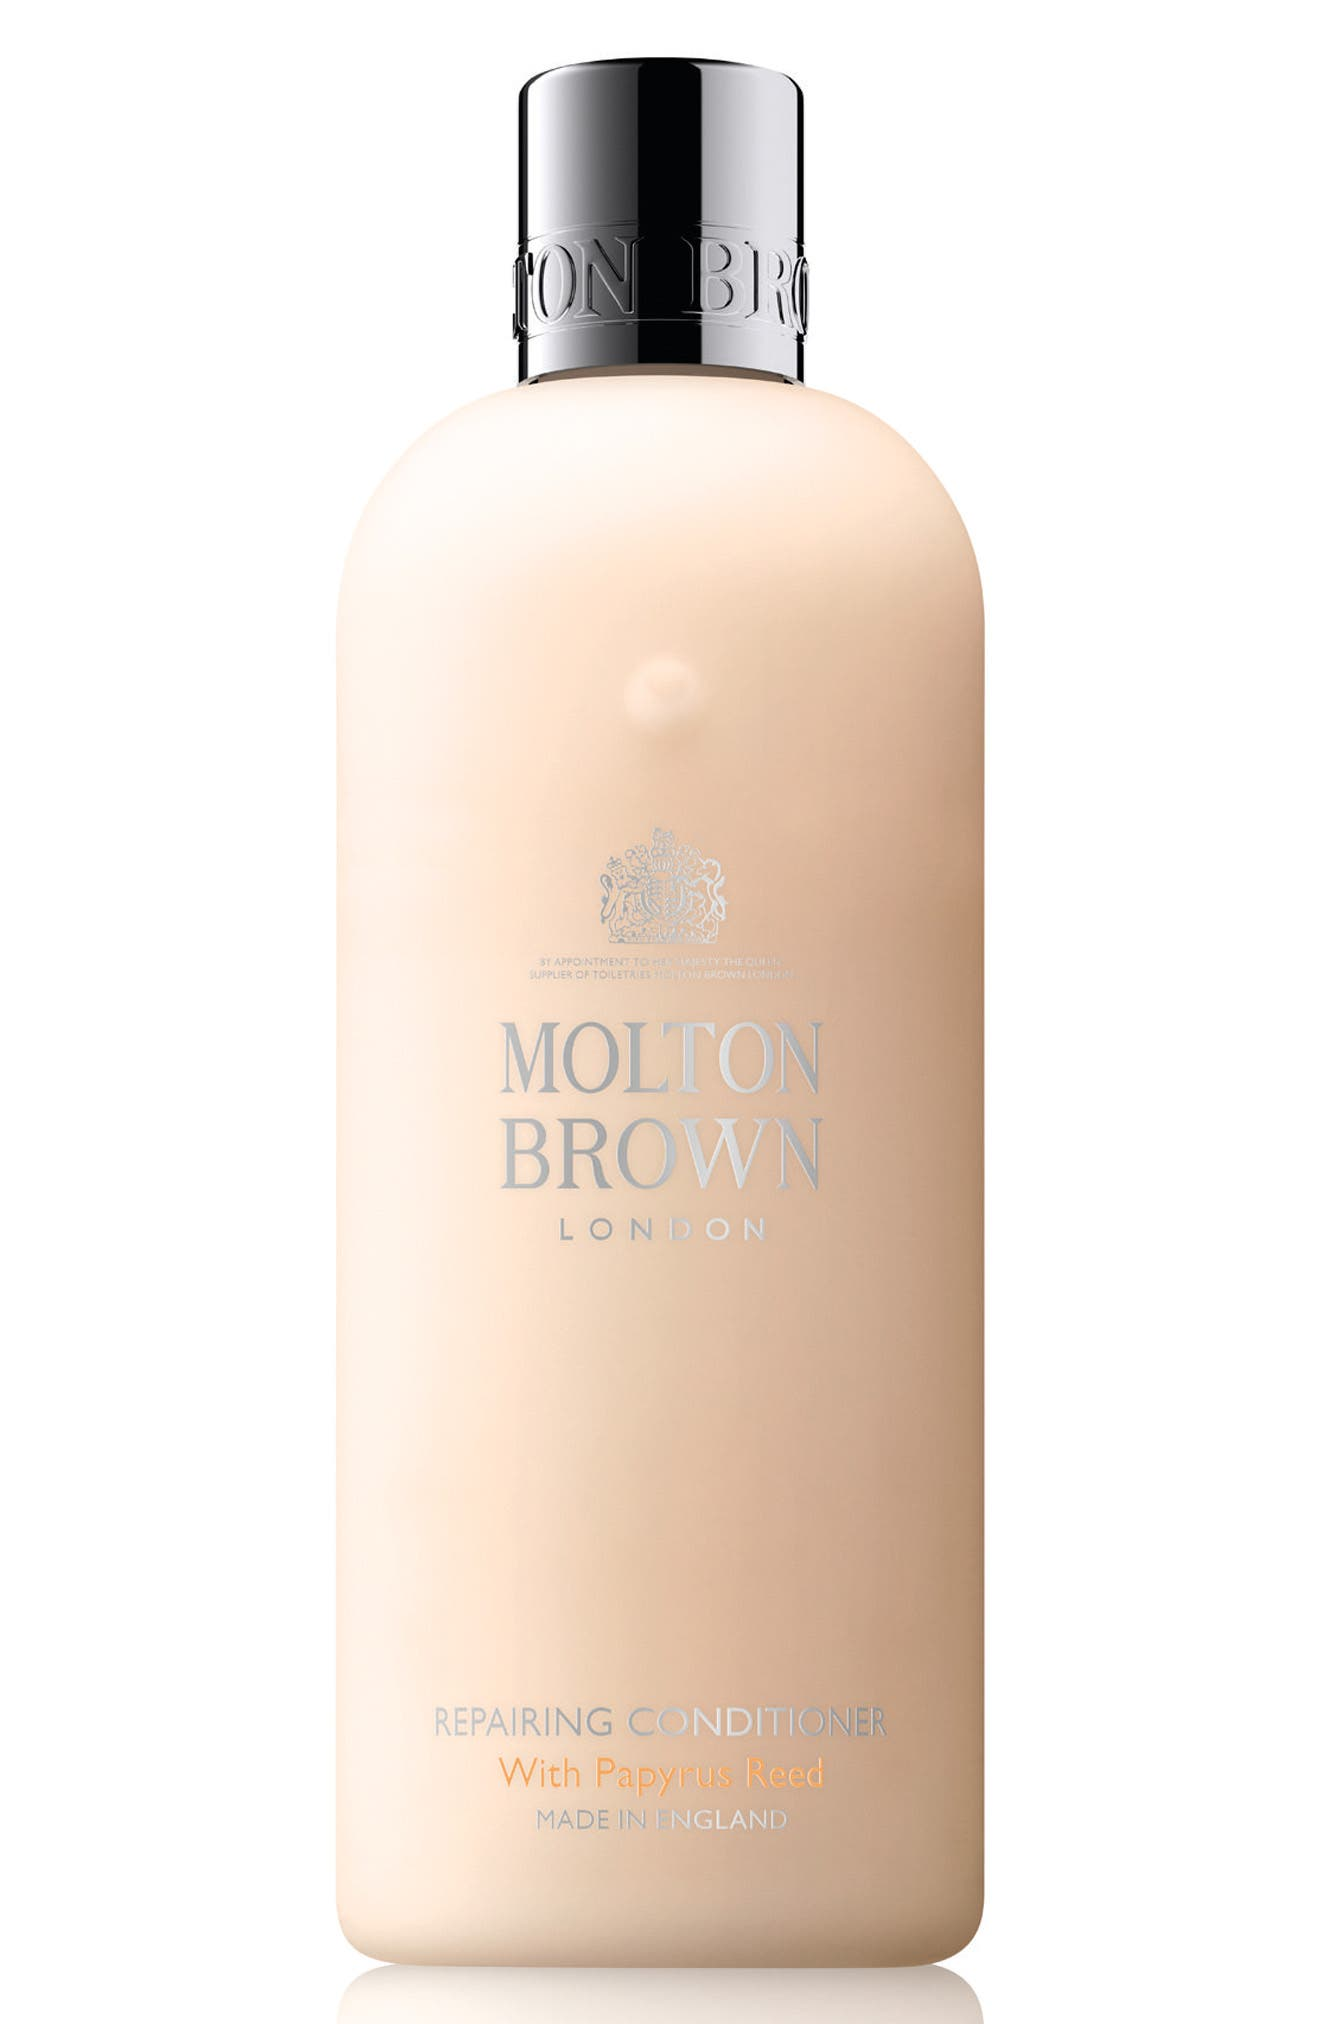 Alternate Image 1 Selected - MOLTON BROWN London Repairing Conditioner with Papyrus Reed